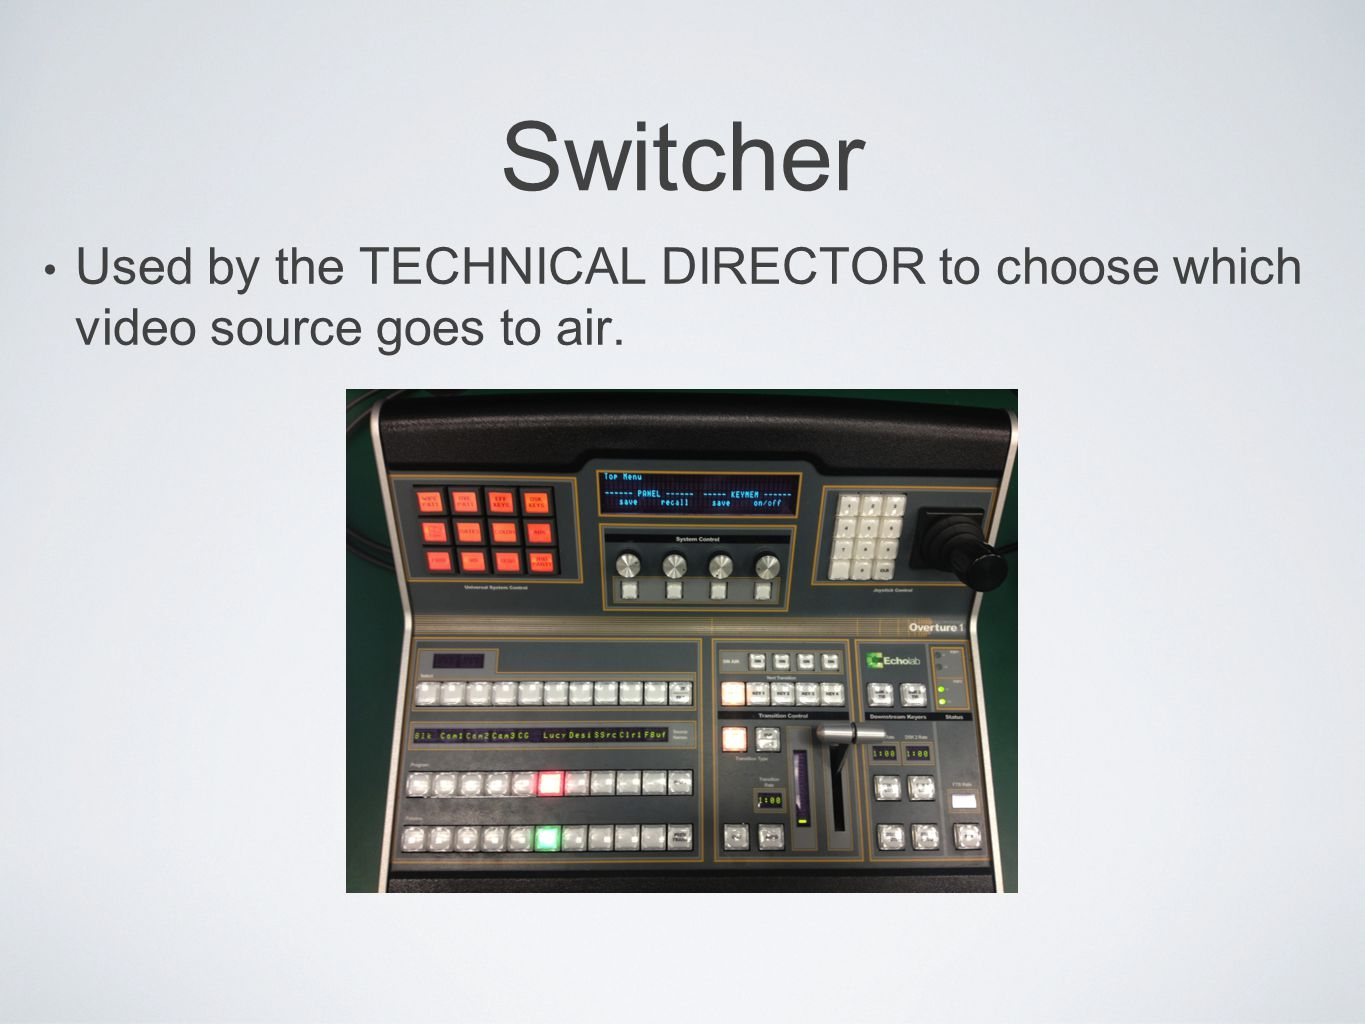 Switcher Used by the TECHNICAL DIRECTOR to choose which video source goes to air.